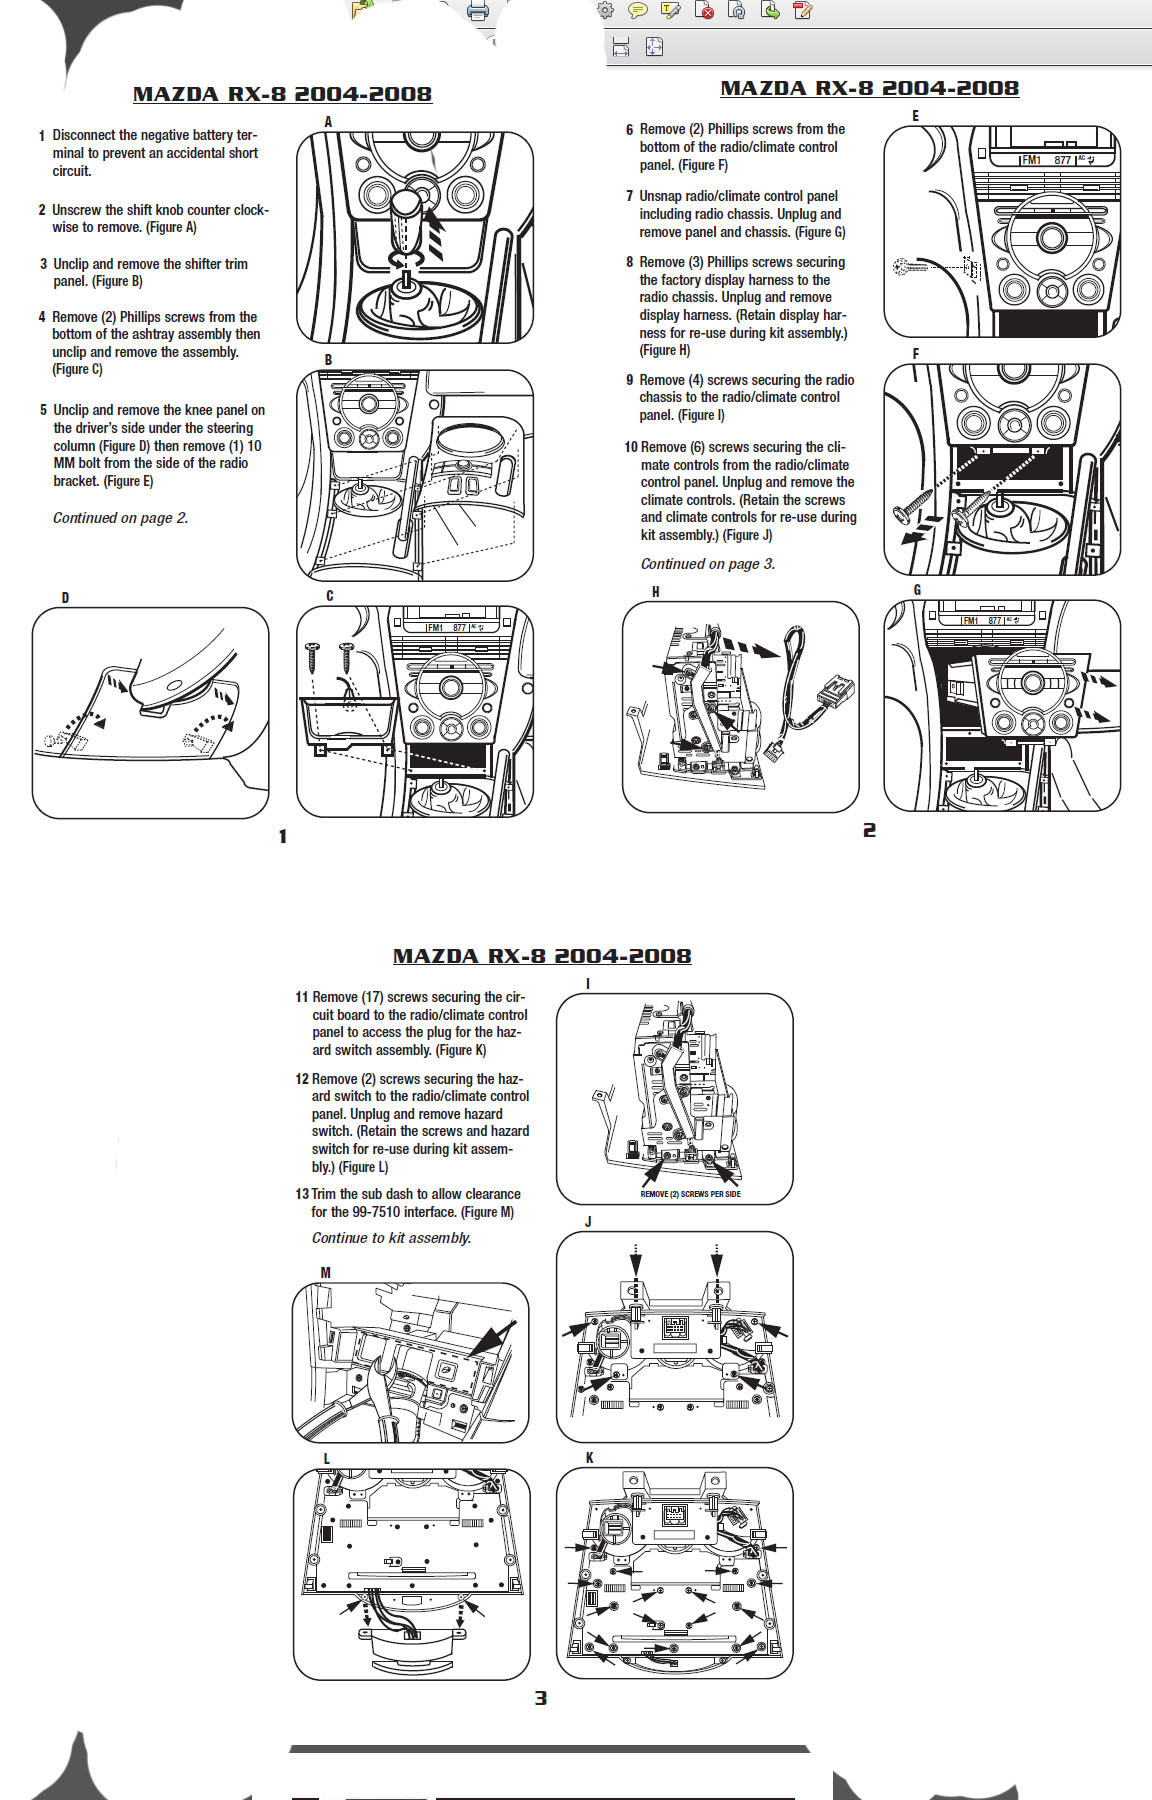 .2005-MAZDA-3installation instructions.